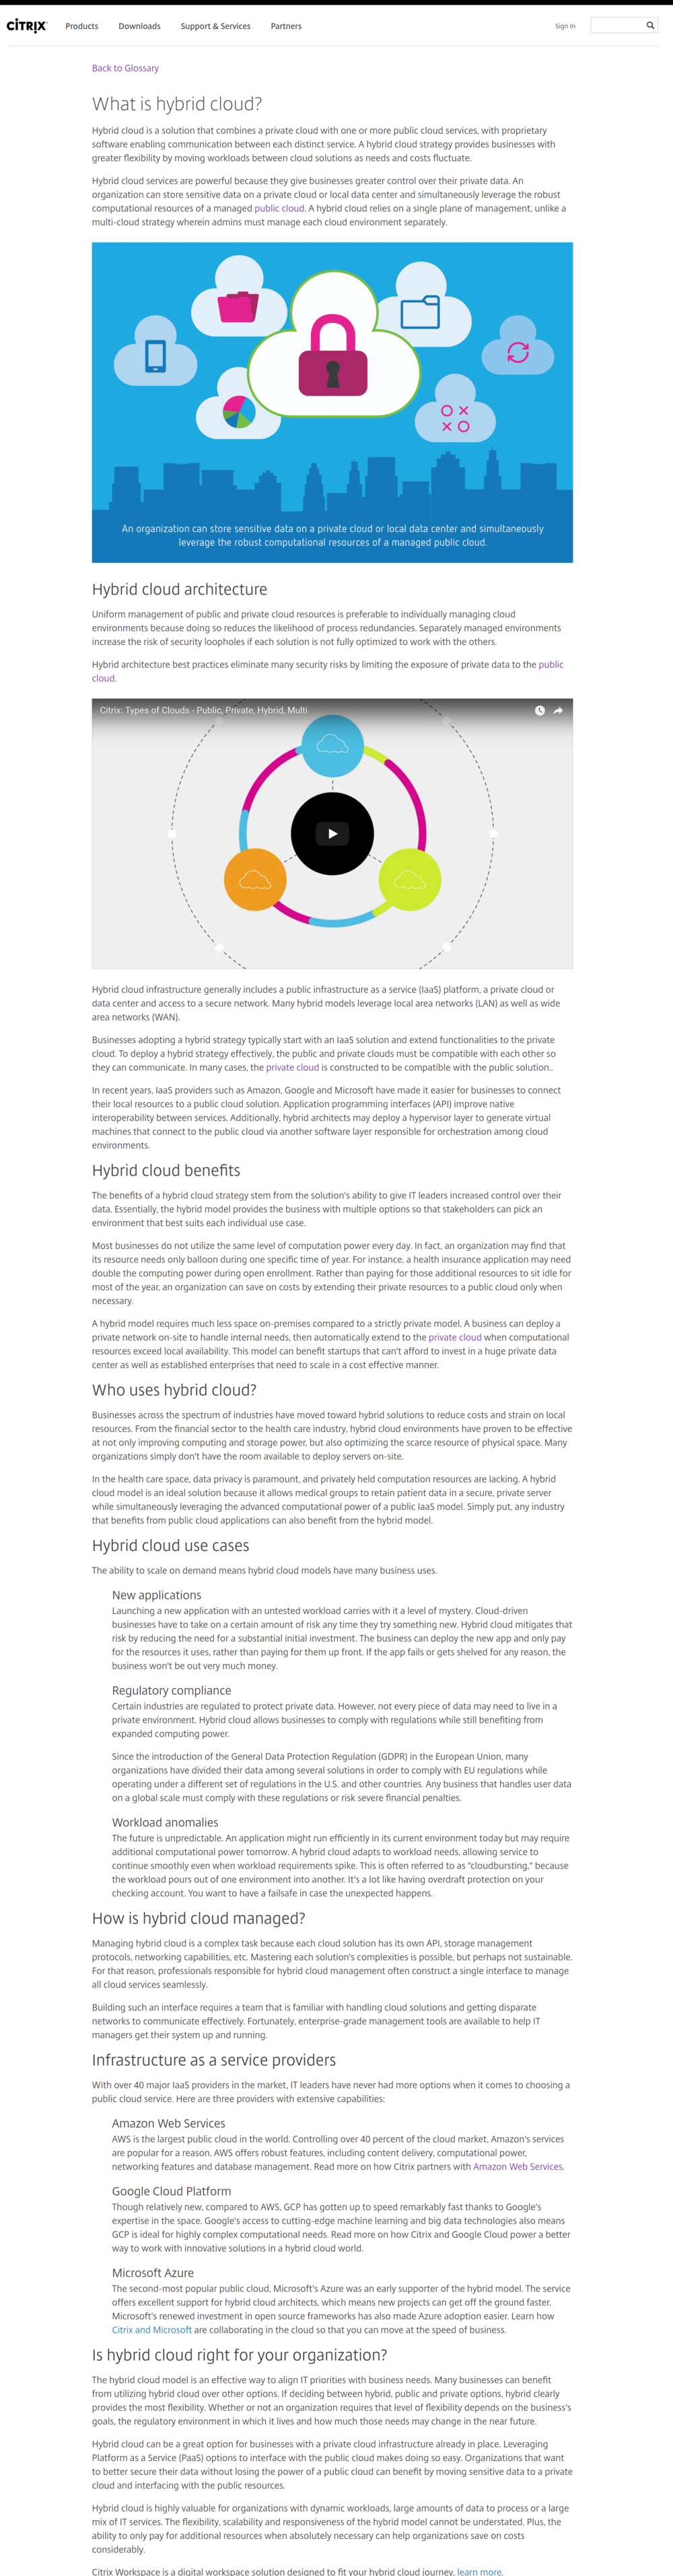 screencapture-citrix-glossary-what-is-hybrid-cloud-html-2018-08-02-09_14_13.png